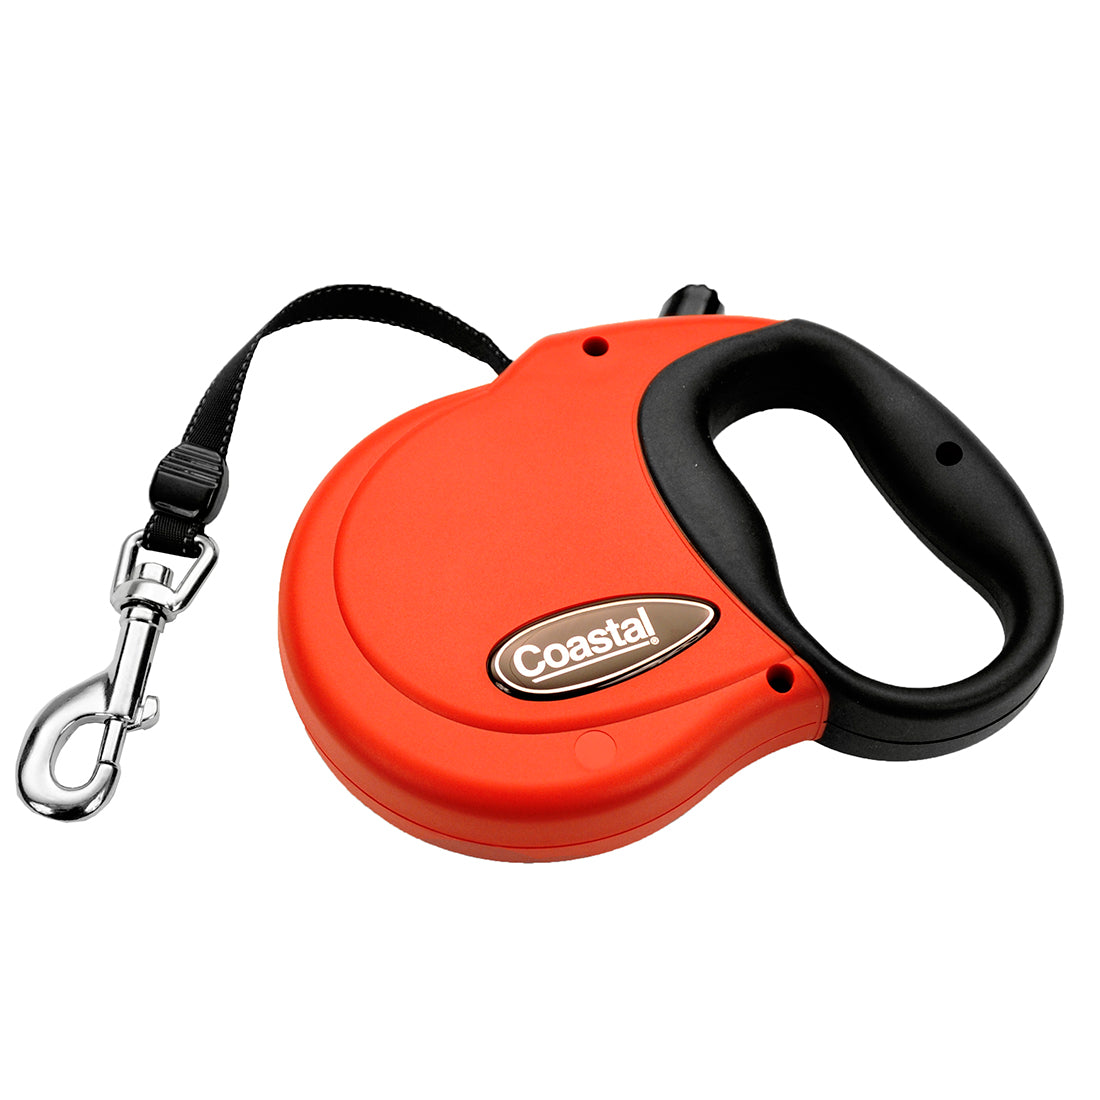 Coastal Power Walker Retractable Lead Medium 16' Red